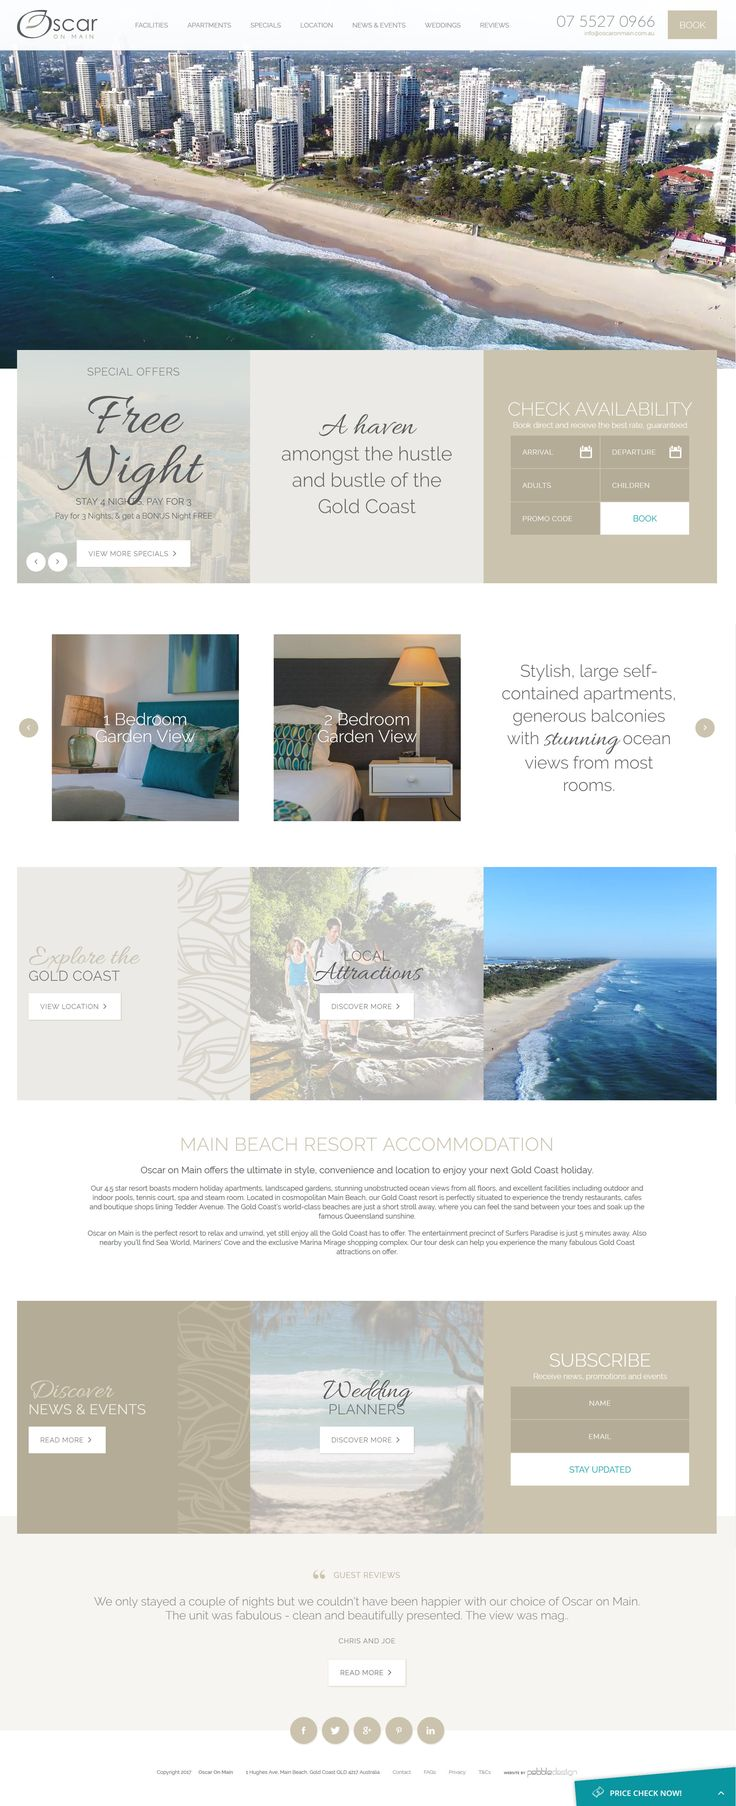 Beautiful new site live for Oscar on Main Beach Resort featuring our new price check widget and aerial video!  See more - http://pebbledesign.com/our-work Site - http://www.oscaronmain.com.au/ Price check - http://pebbledesign.com/video/pebble-price-check More video - http://pebbledesign.com/video-storytelling